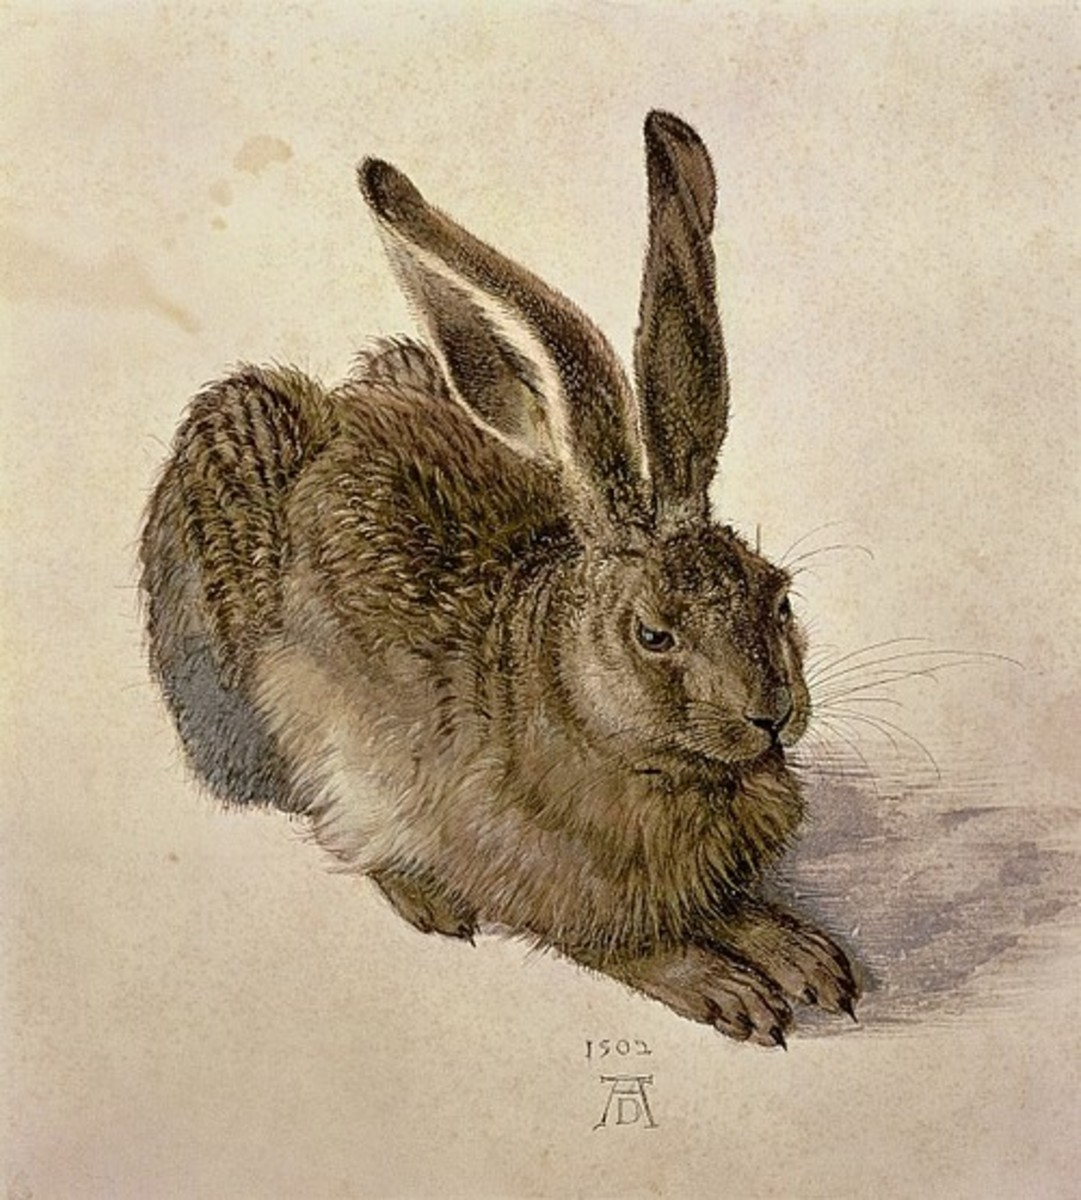 Durer's colored drawings of nature.